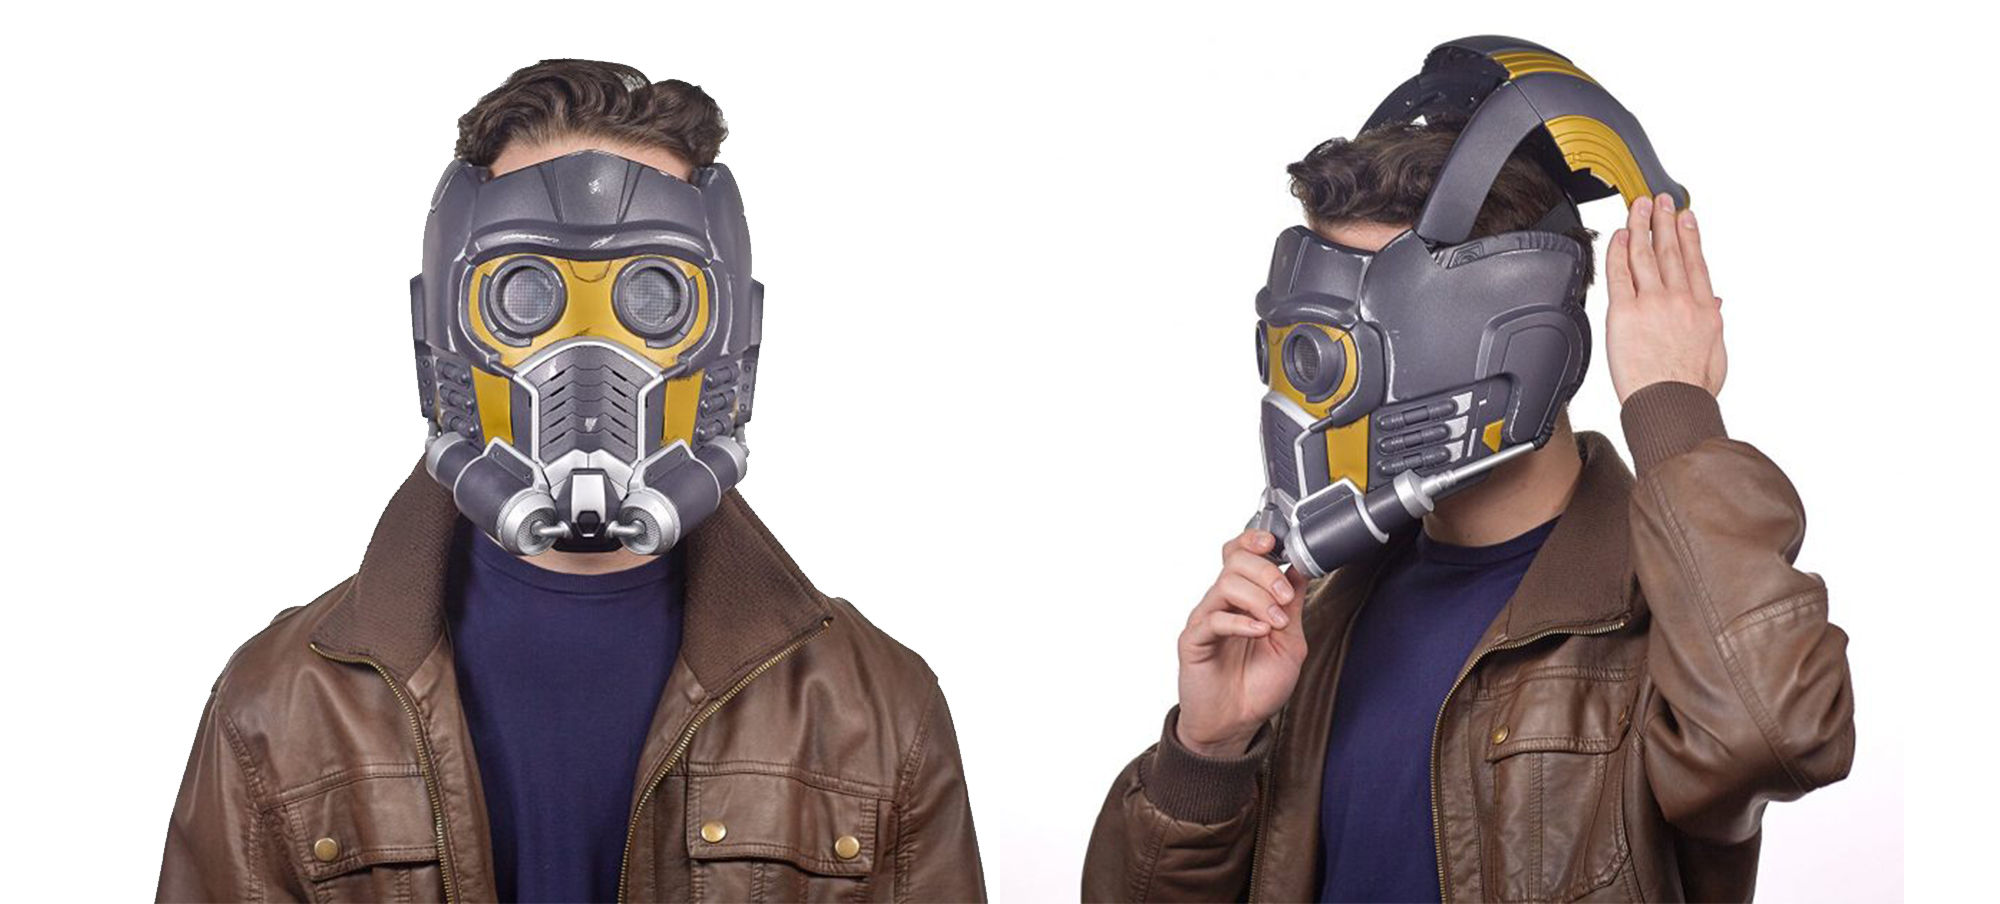 Marvel Legends Series Guardians of the Galaxy Star-Lord Electronic Helmet